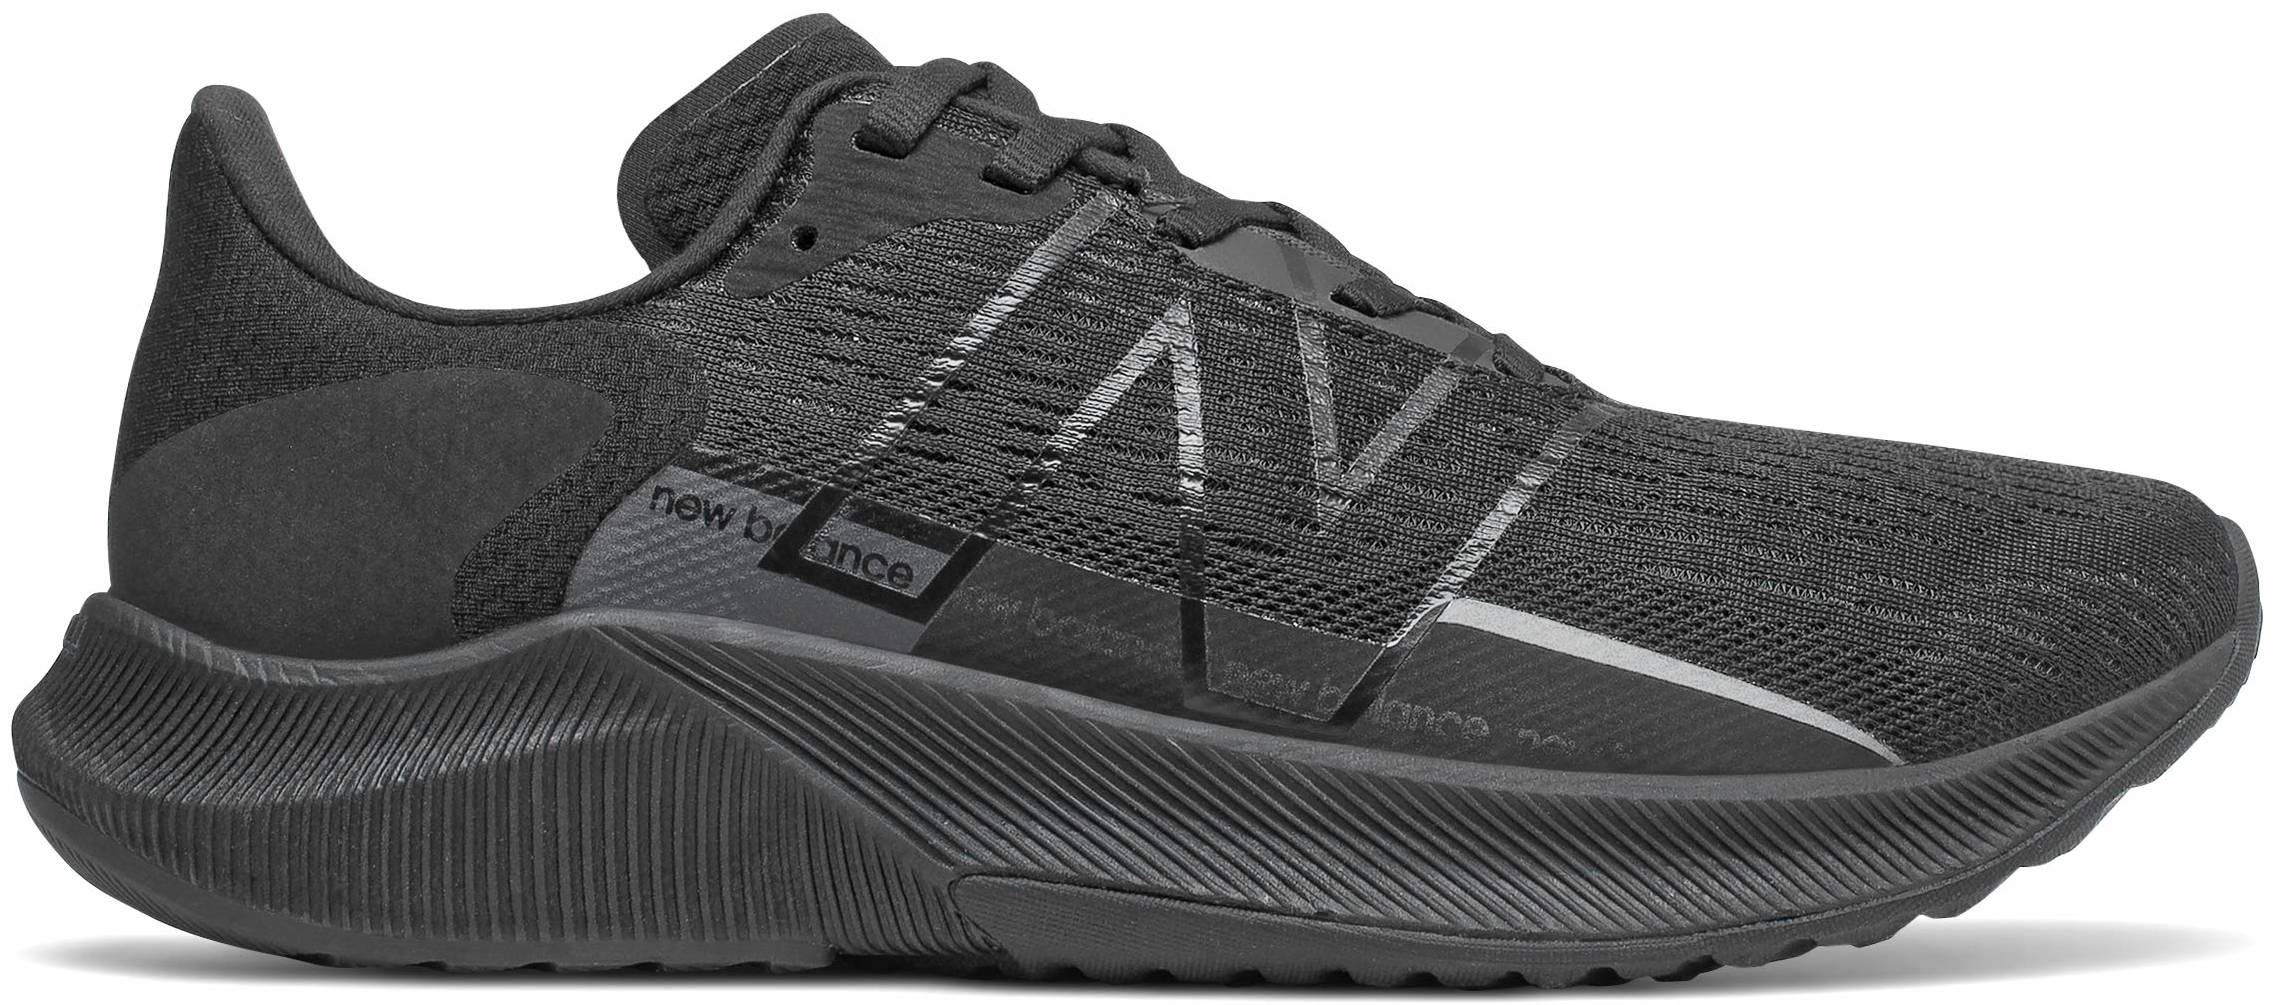 New Balance FuelCell Propel v2 - Deals ($50), Facts, Reviews (2021 ...